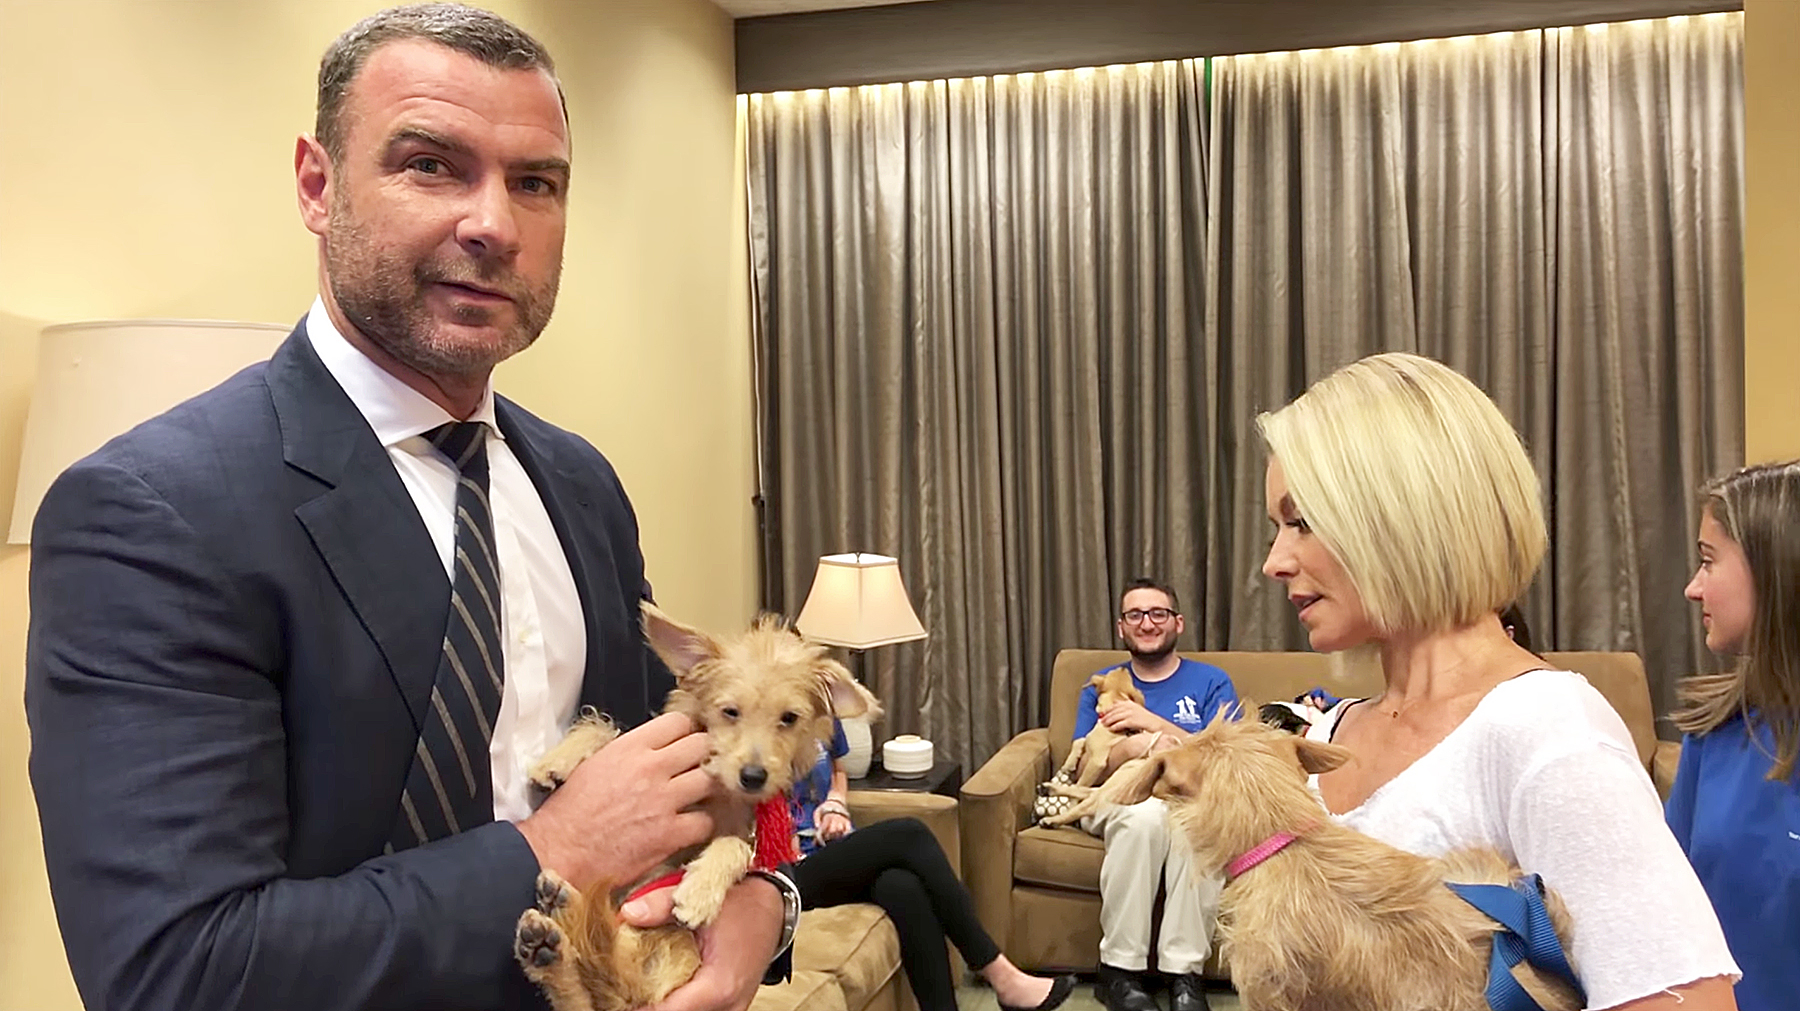 Liev Schrieber Kelly Ripa puppies hurricane